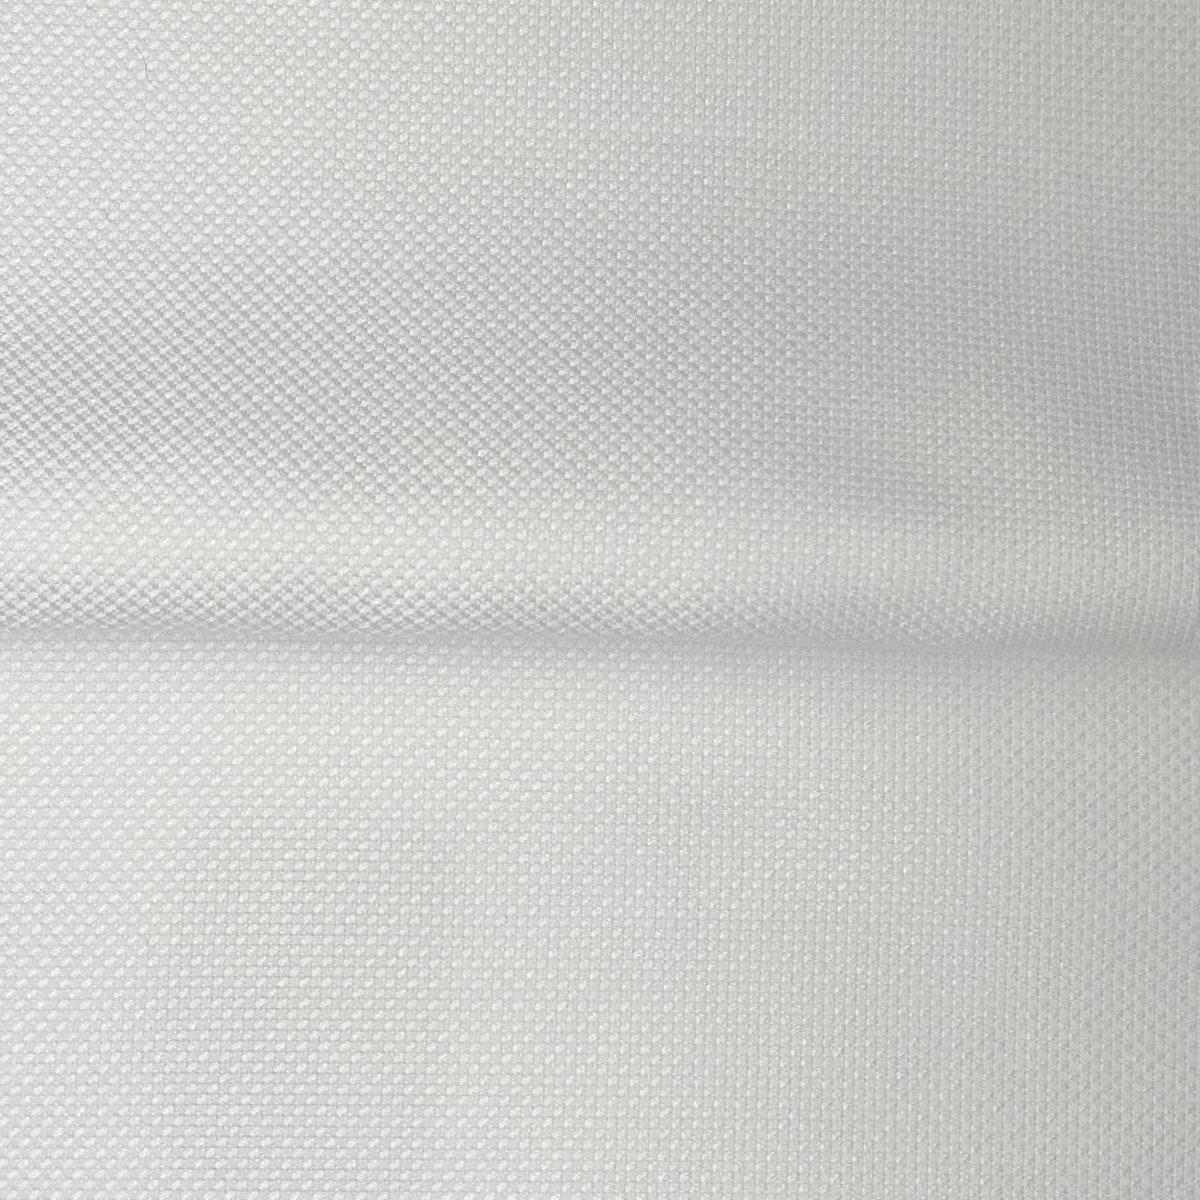 InStitchu Shirt Fabric 9